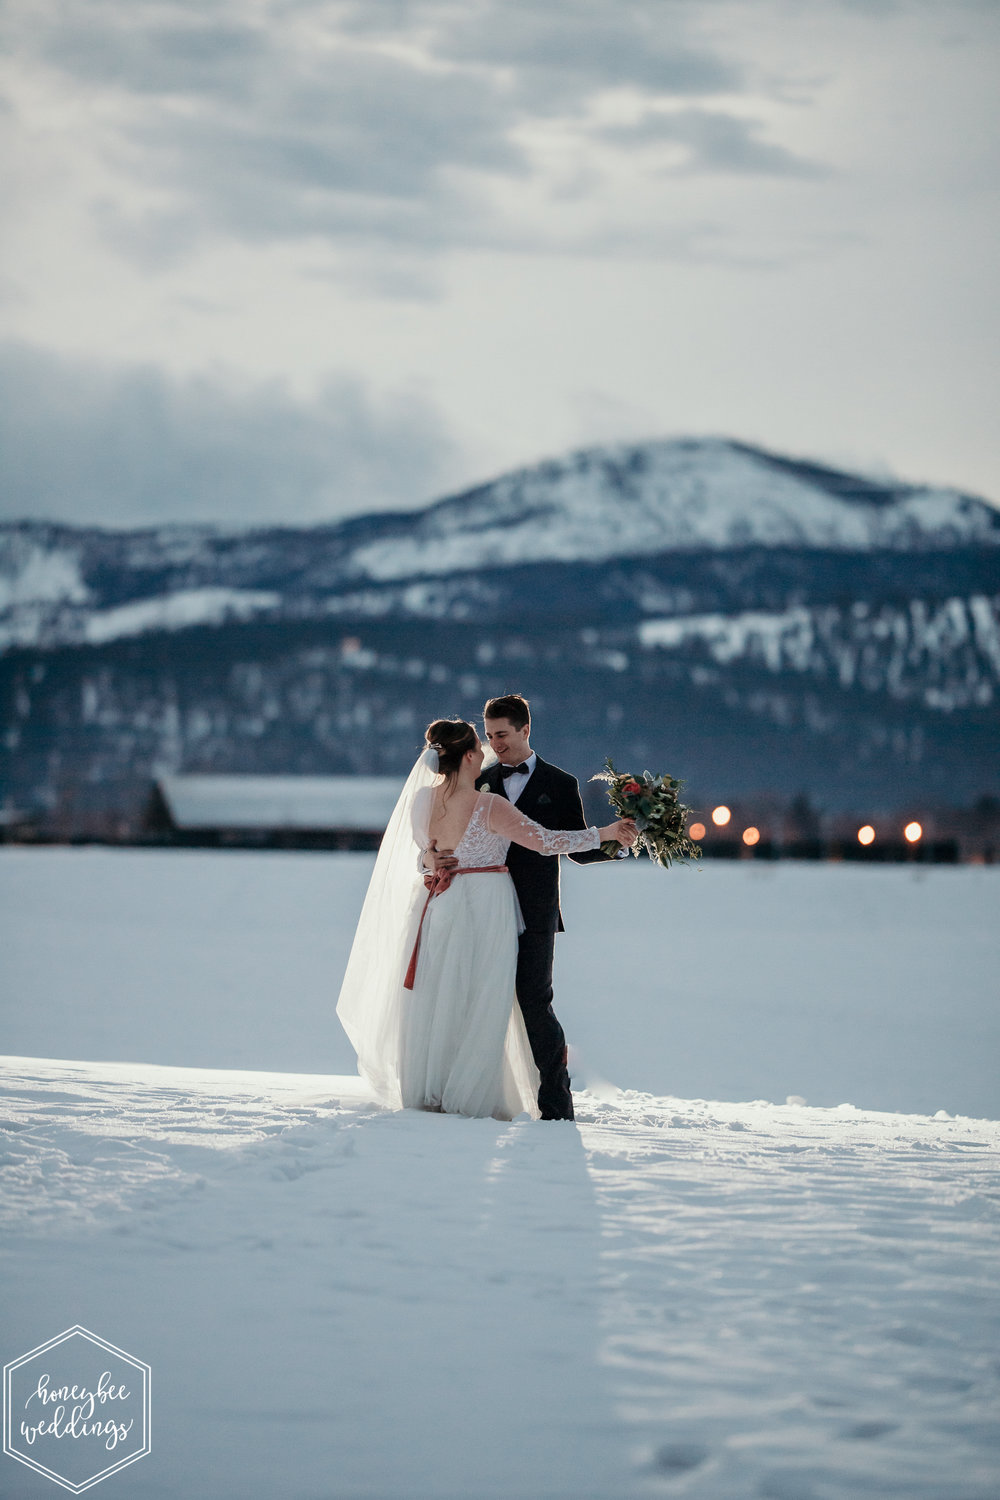 0272Montana Wedding Photographer_Montana winter wedding_Wedding at Fort Missoula_Meri & Carter_December 31, 2015-24.jpg